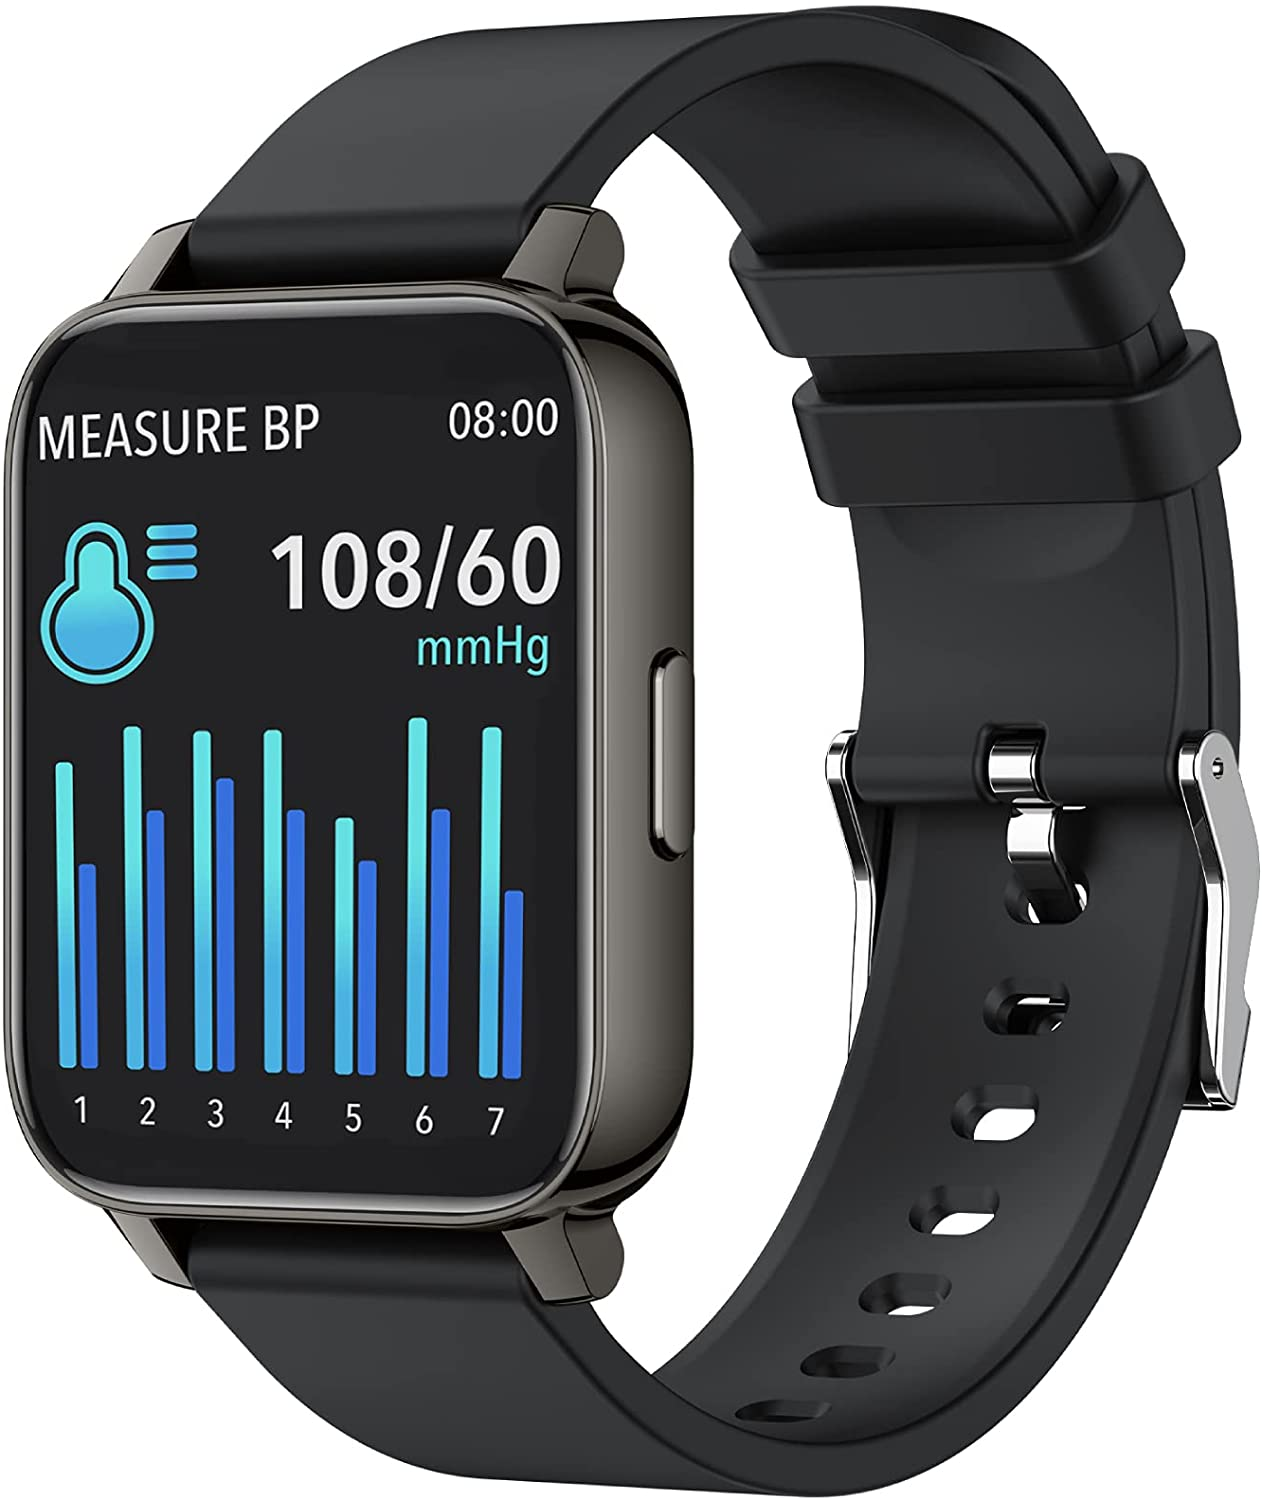 yussa Smart Watch | Latest Generation 2021 | Blood Pressure Monitor (No Phone Required)| Blood Oxygen SpO2 | Heart Rate | Sleep Monitor | IP67 Waterproof | Fitness Tracker | for Women and Men